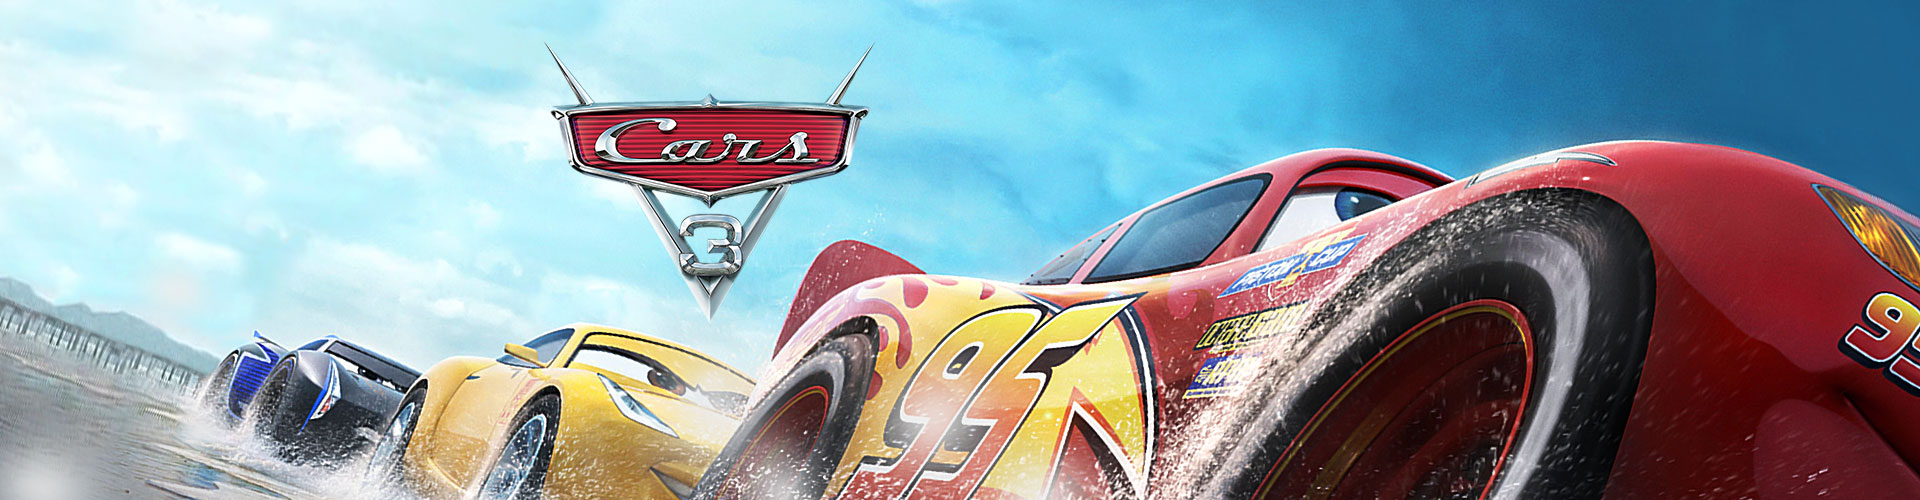 Dvd-it_banner_Cars3_1170x400